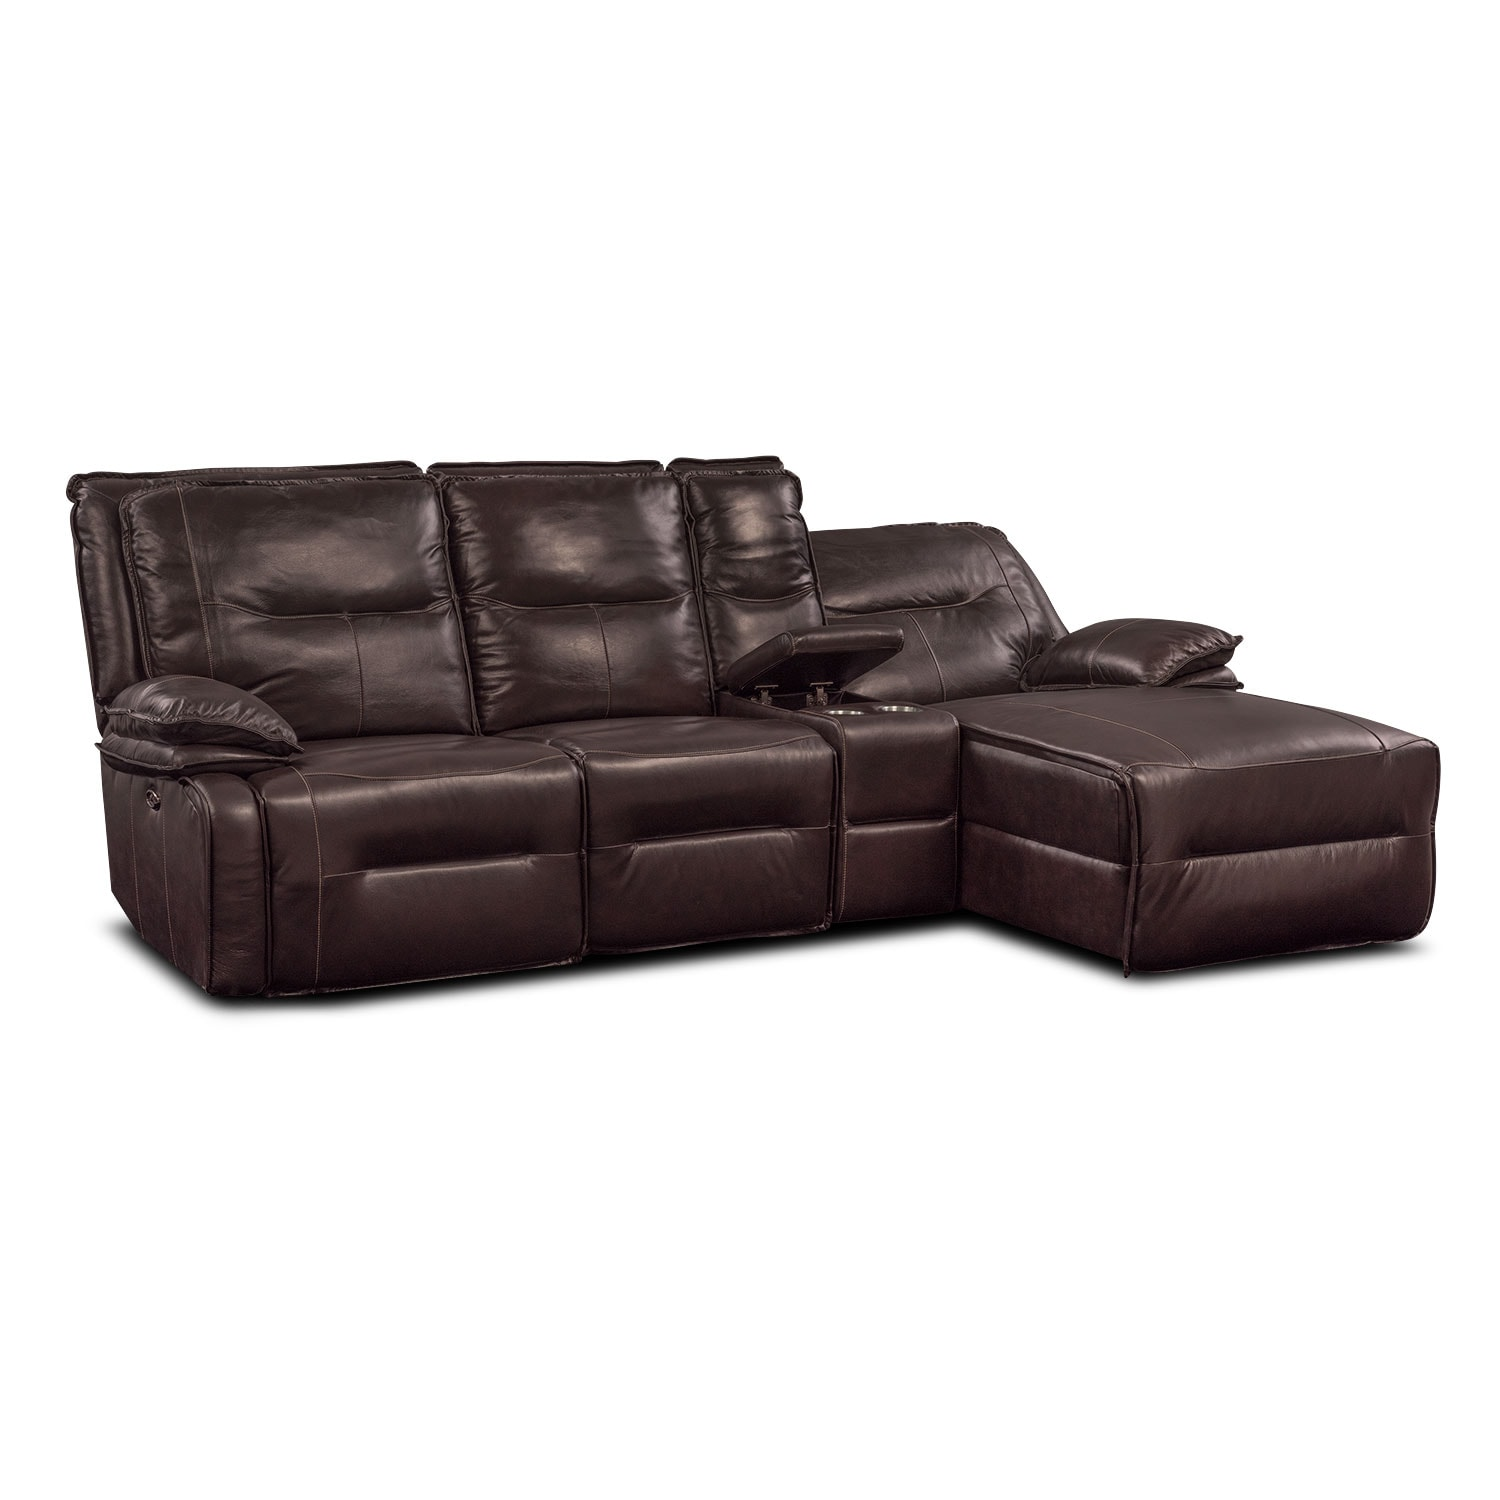 Nikki 4 Piece Power Reclining Sectional with Right Facing Chaise